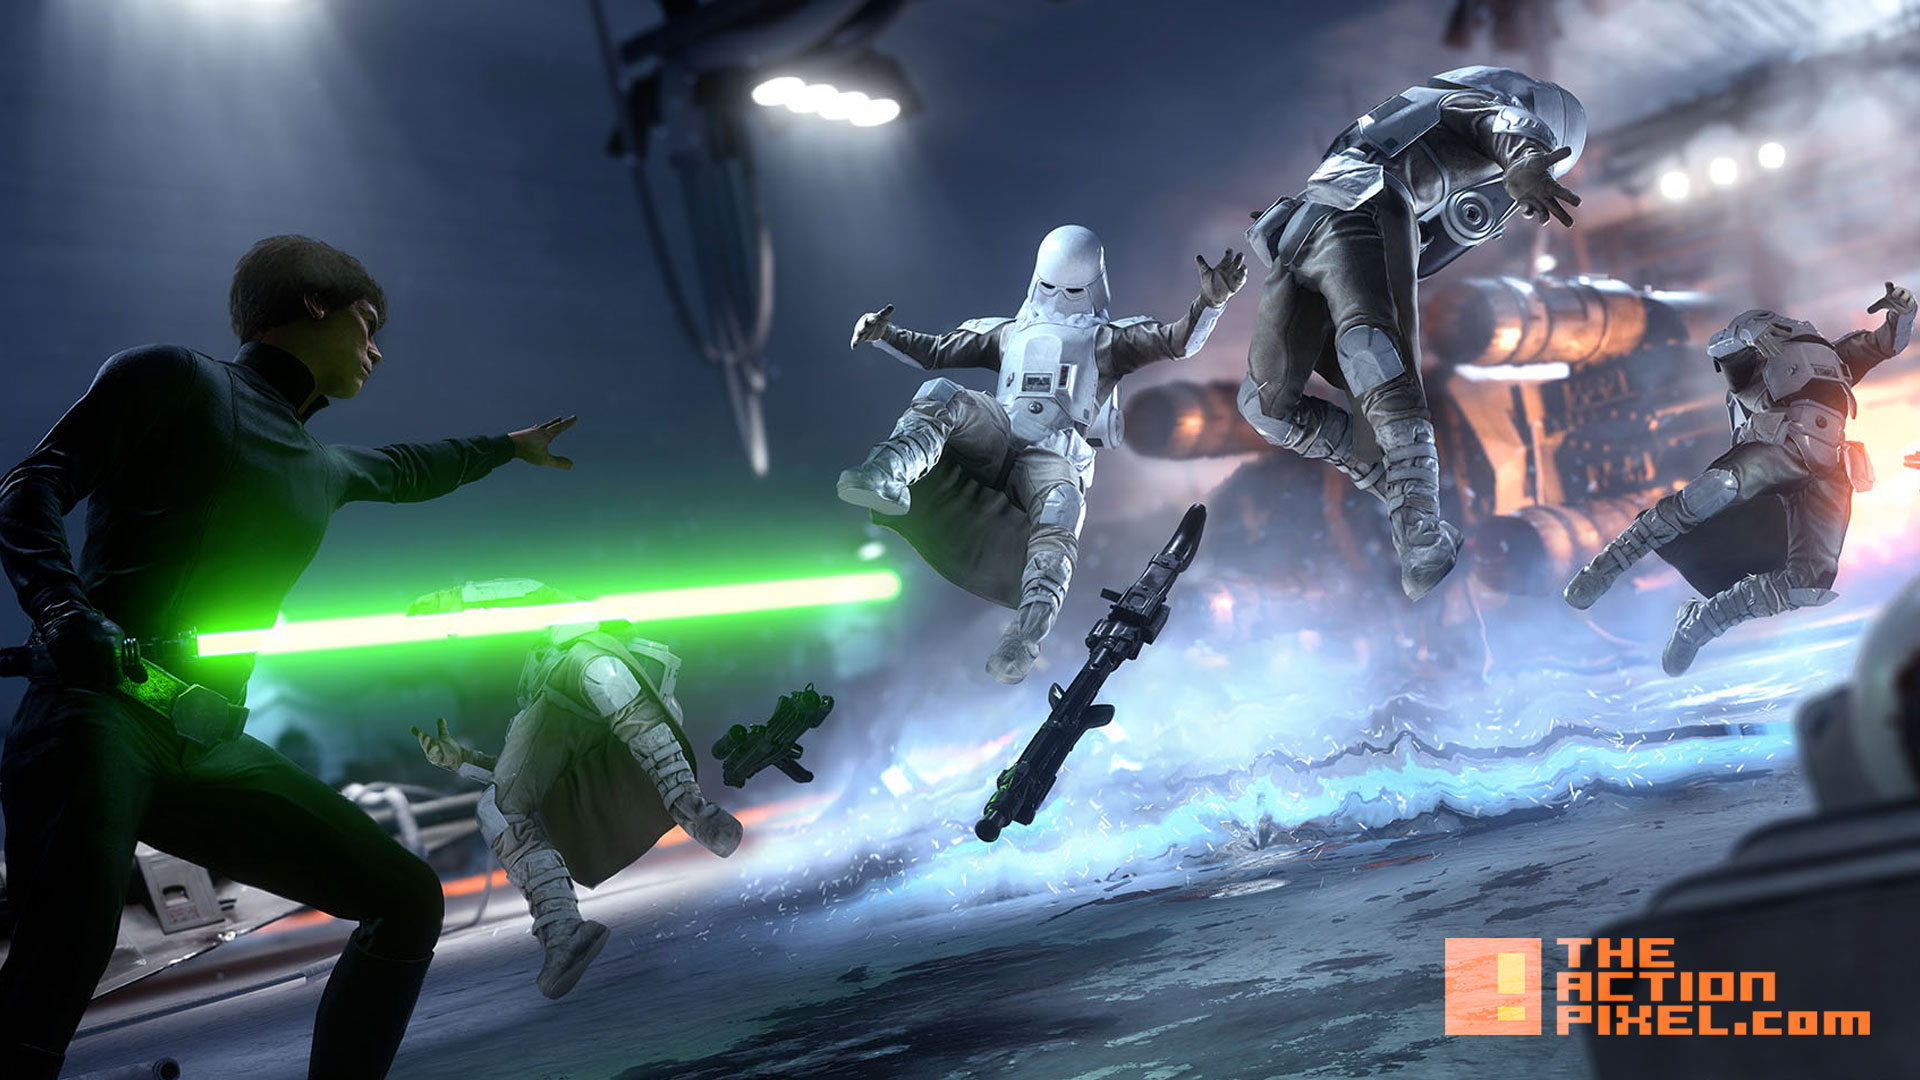 star wars battlefield. luke skywalker. force . ea . dice games. the action pixel. @theactionpixel